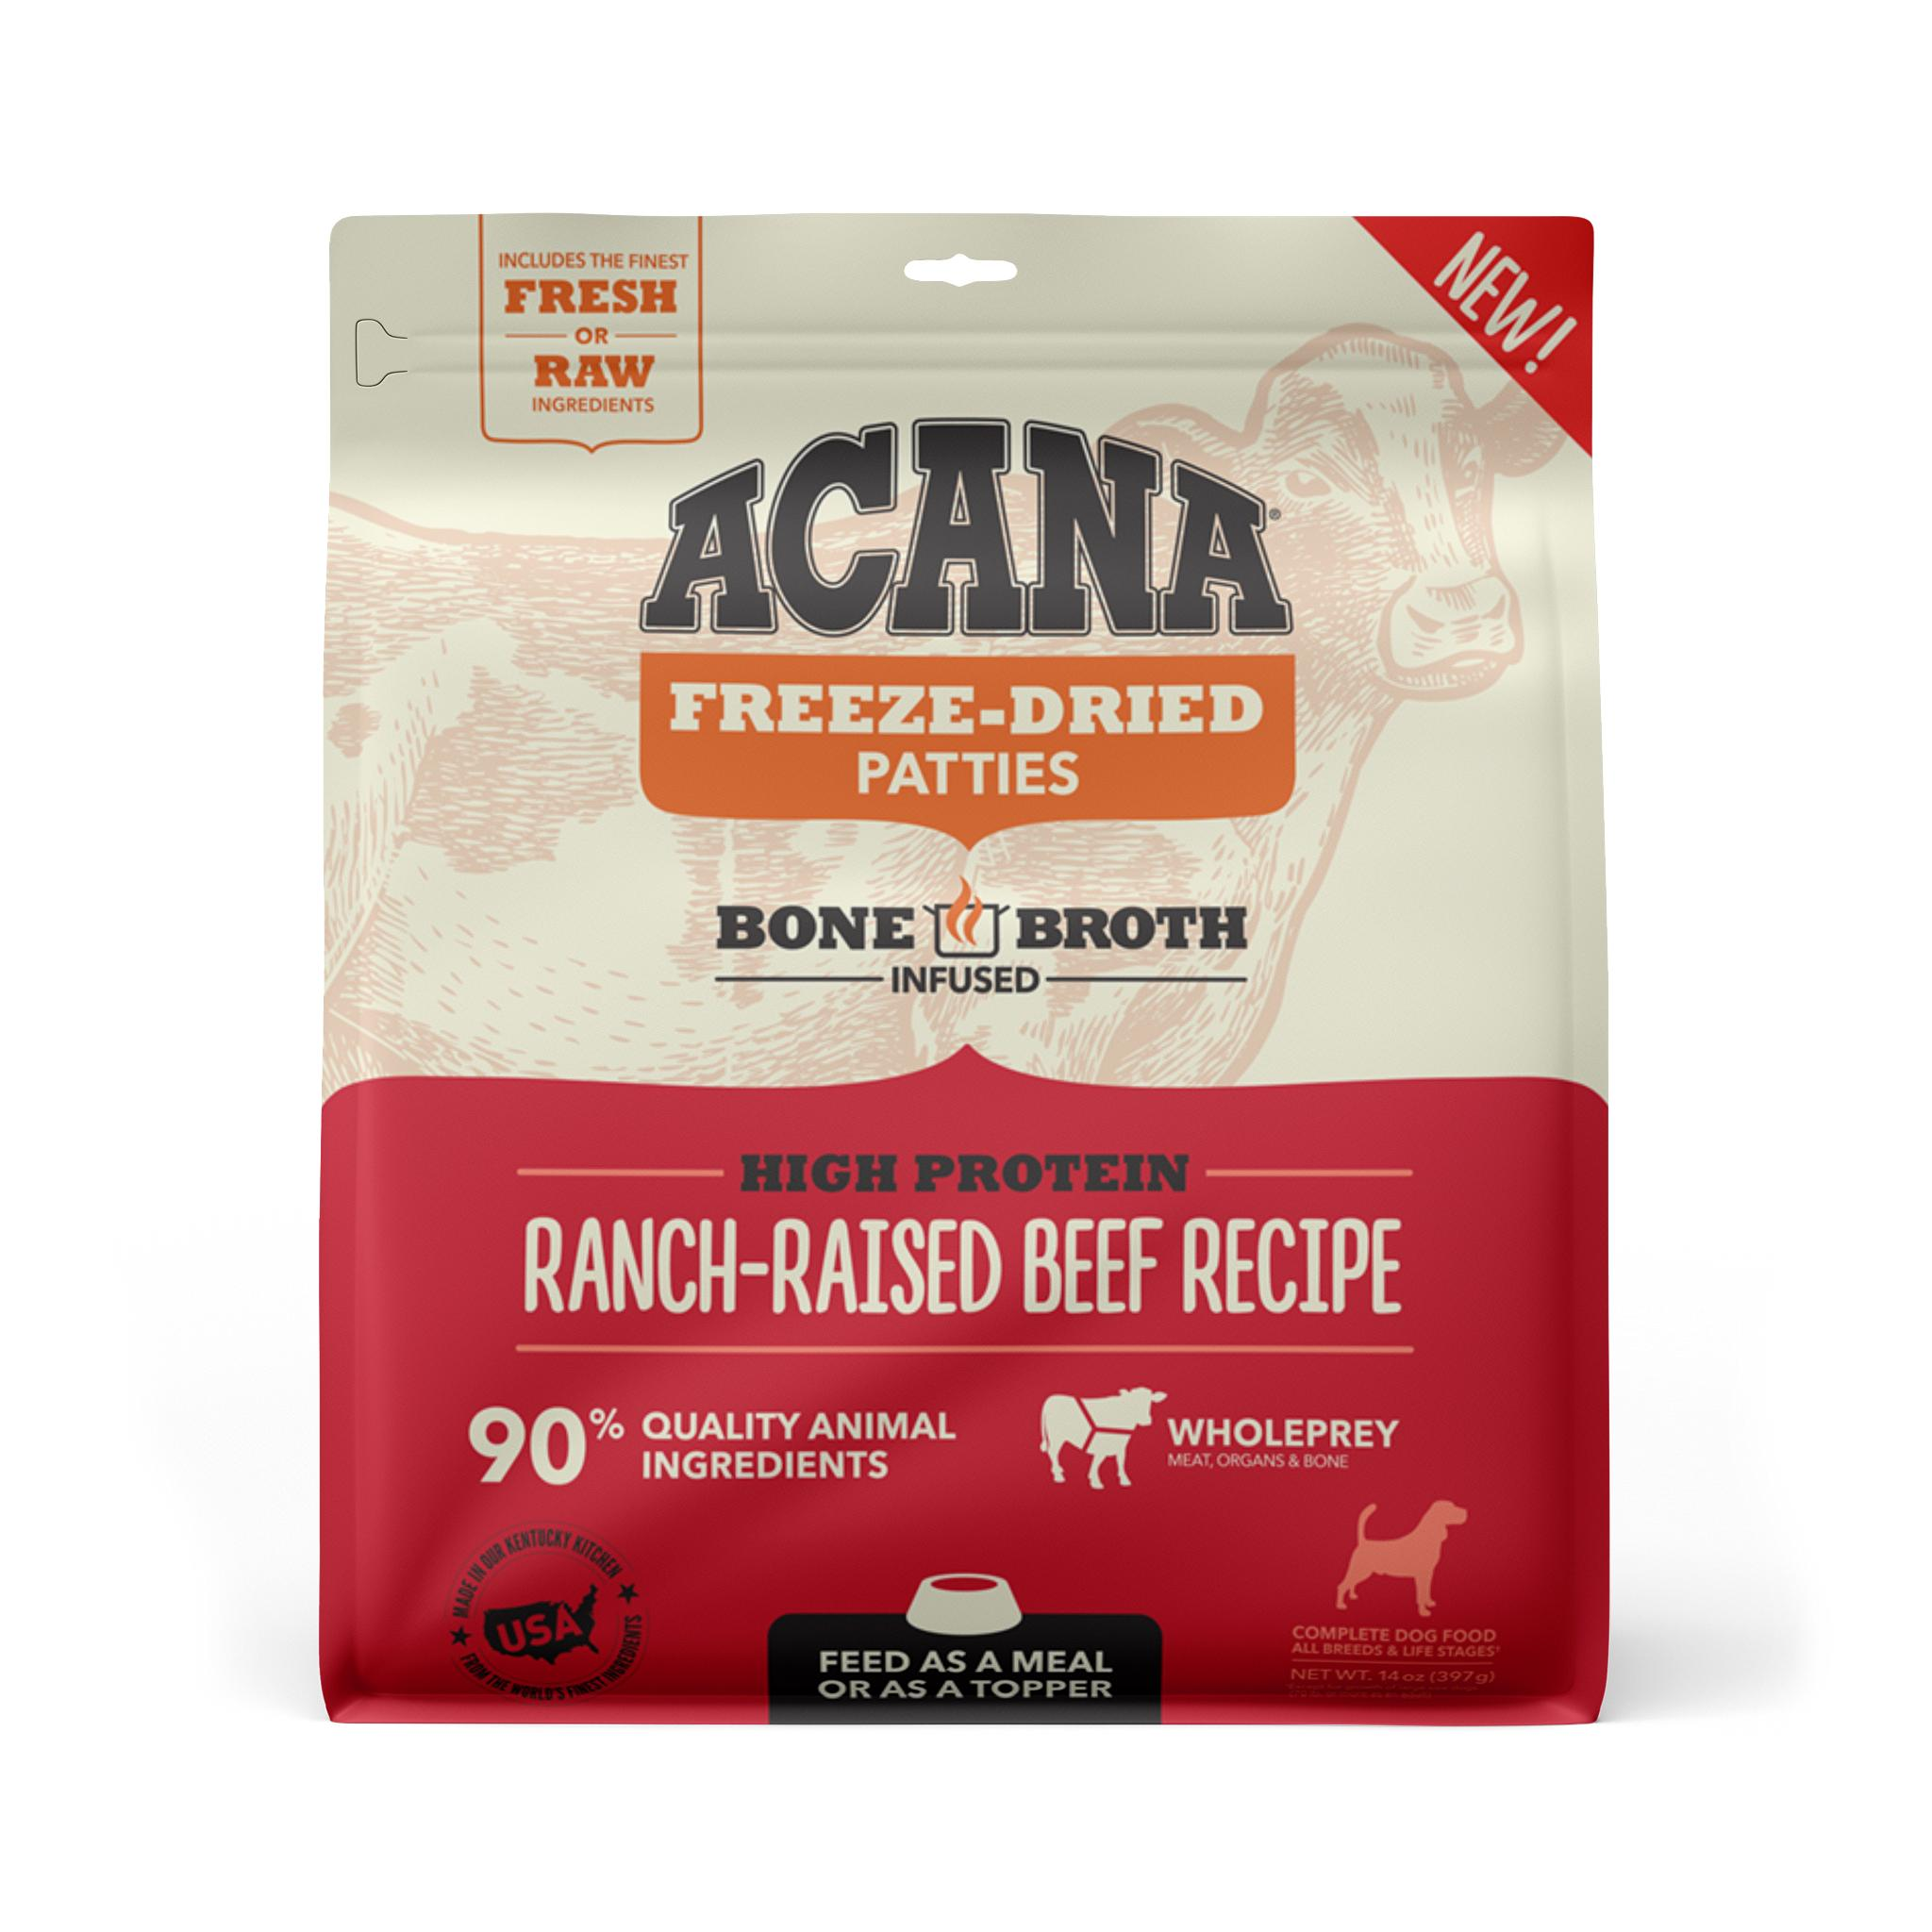 ACANA Ranch-Raised Beef Recipe Patties Grain-Free Freeze-Dried Dog Food, 14-oz (Size: 14-oz) Image